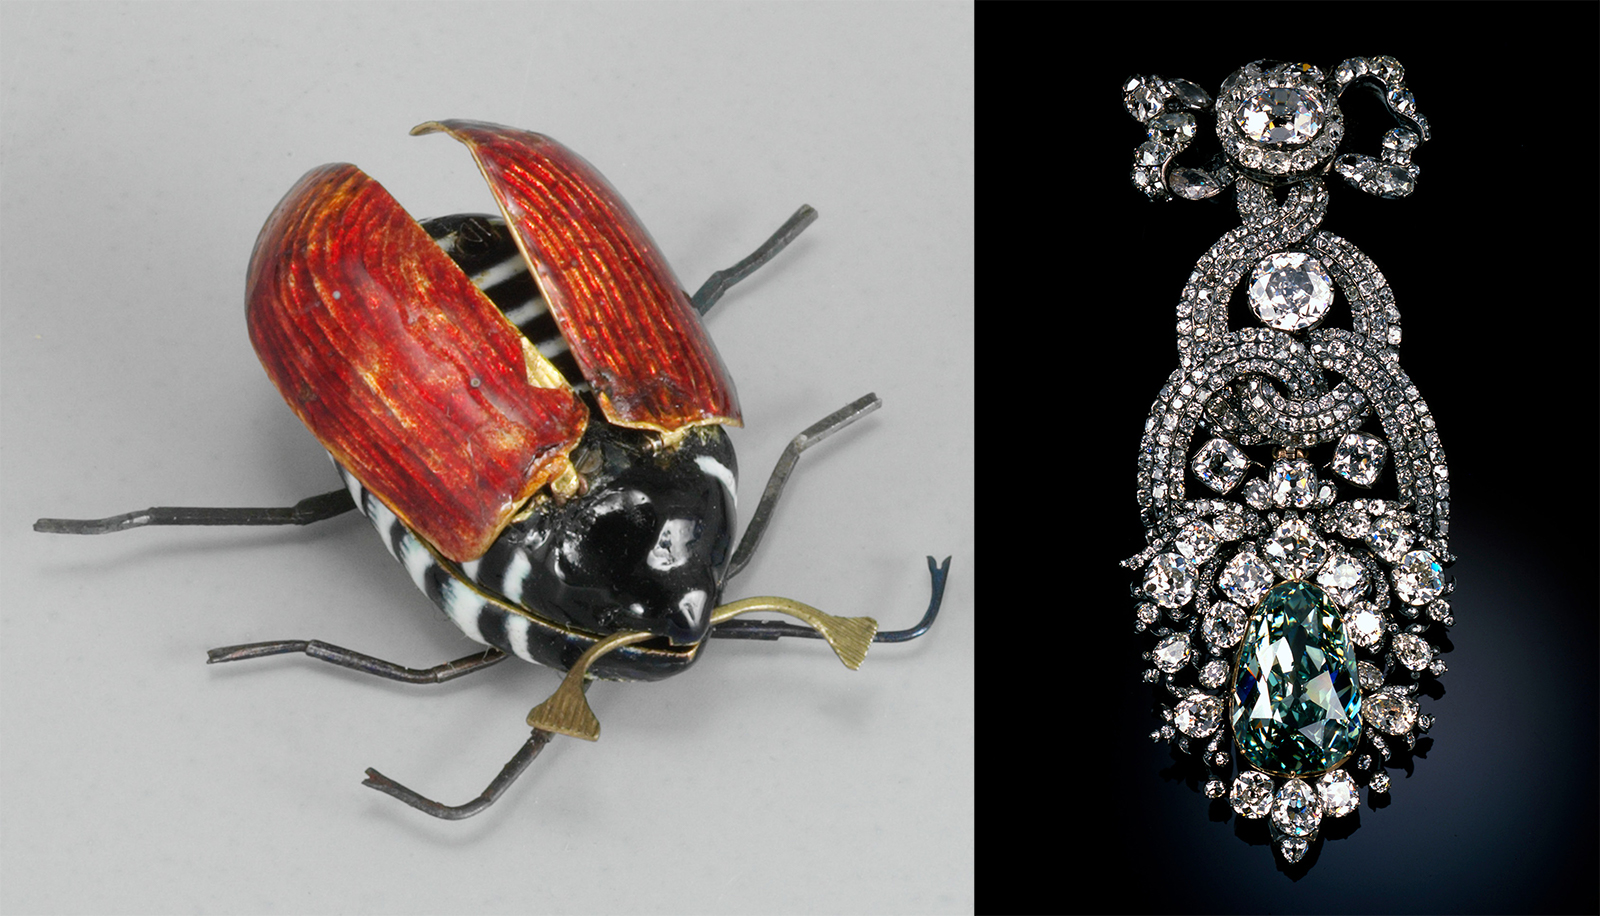 painted mechanical insect and ornate jewelry made of large diamonds